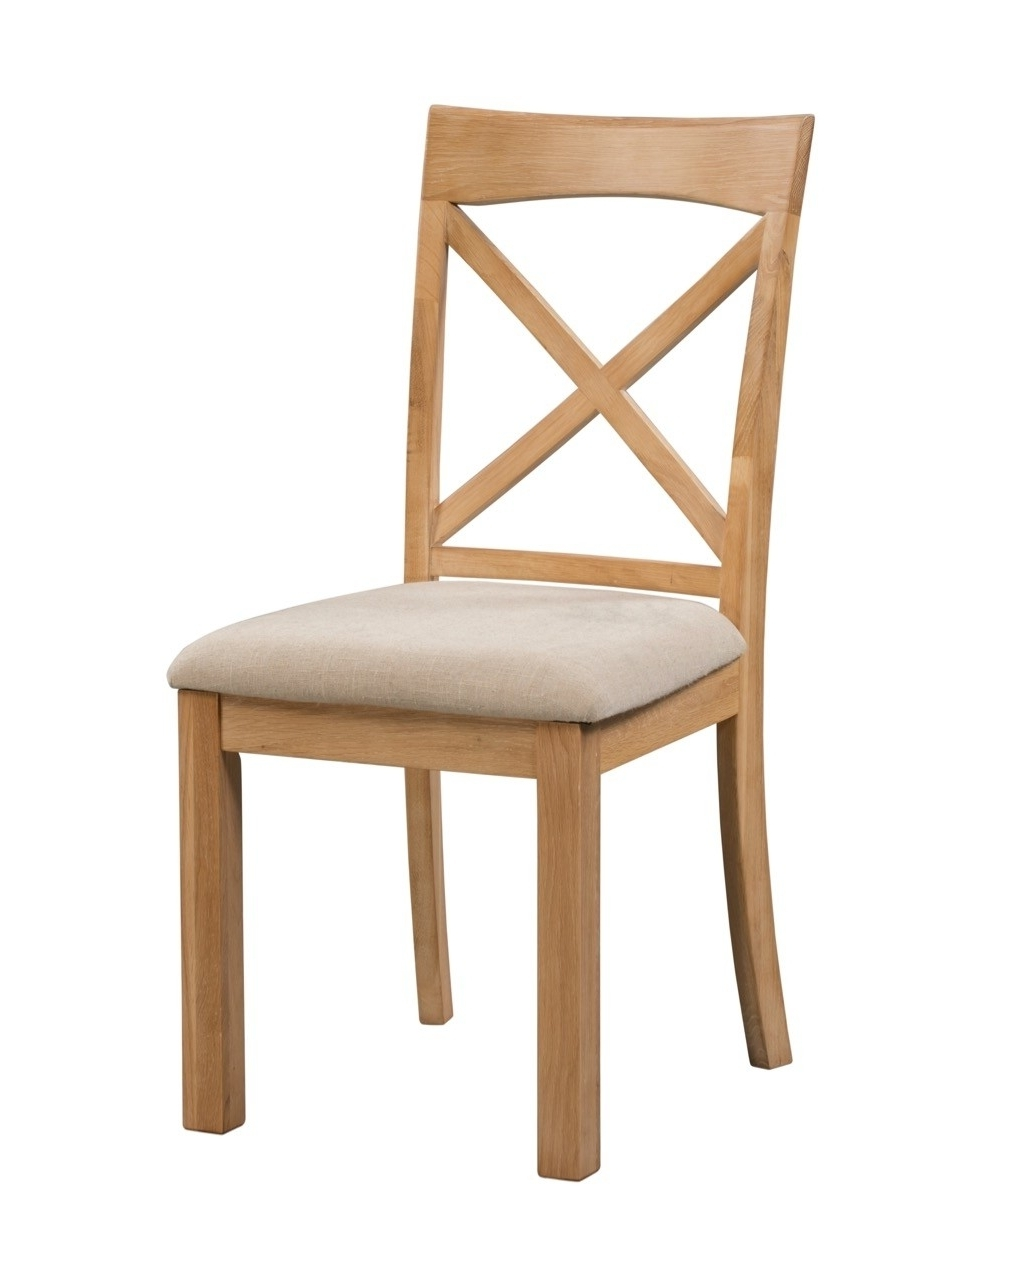 Oak Dining Chairs Within Current Boston Oak Dining Chair – Brand Interiors (View 12 of 25)